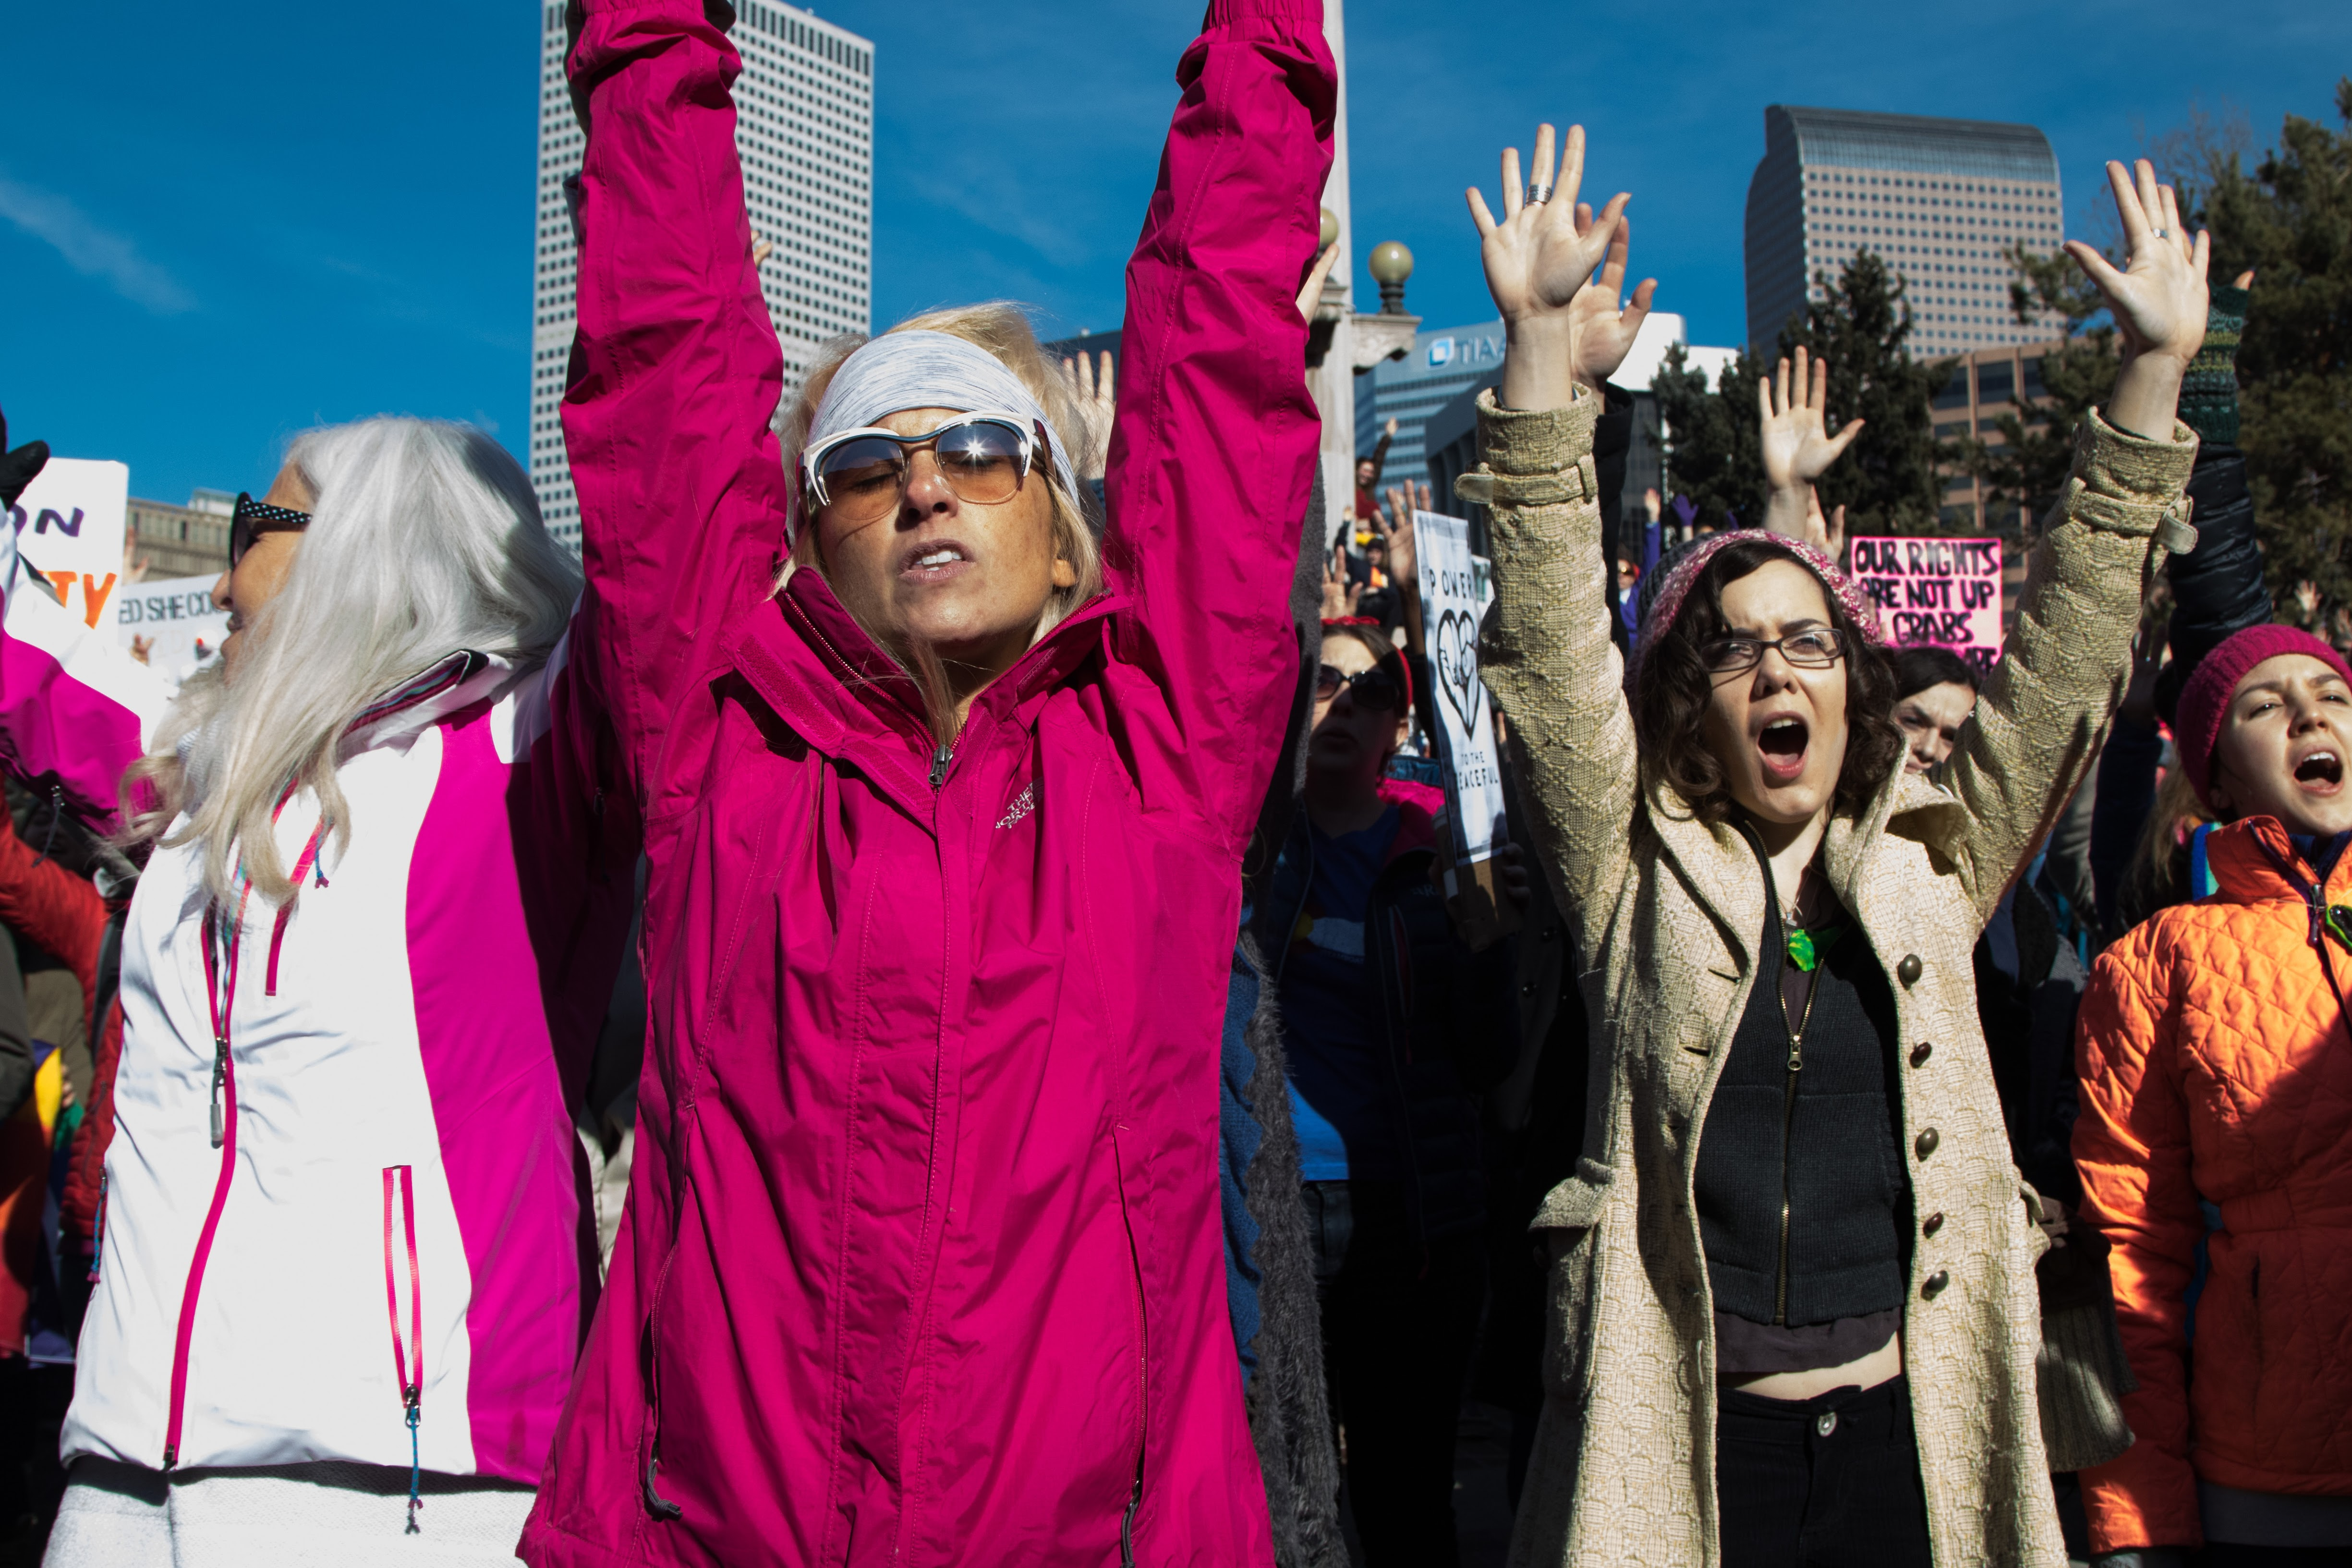 Women's March on Denver, aimed at Trump administration, draws over 100,000